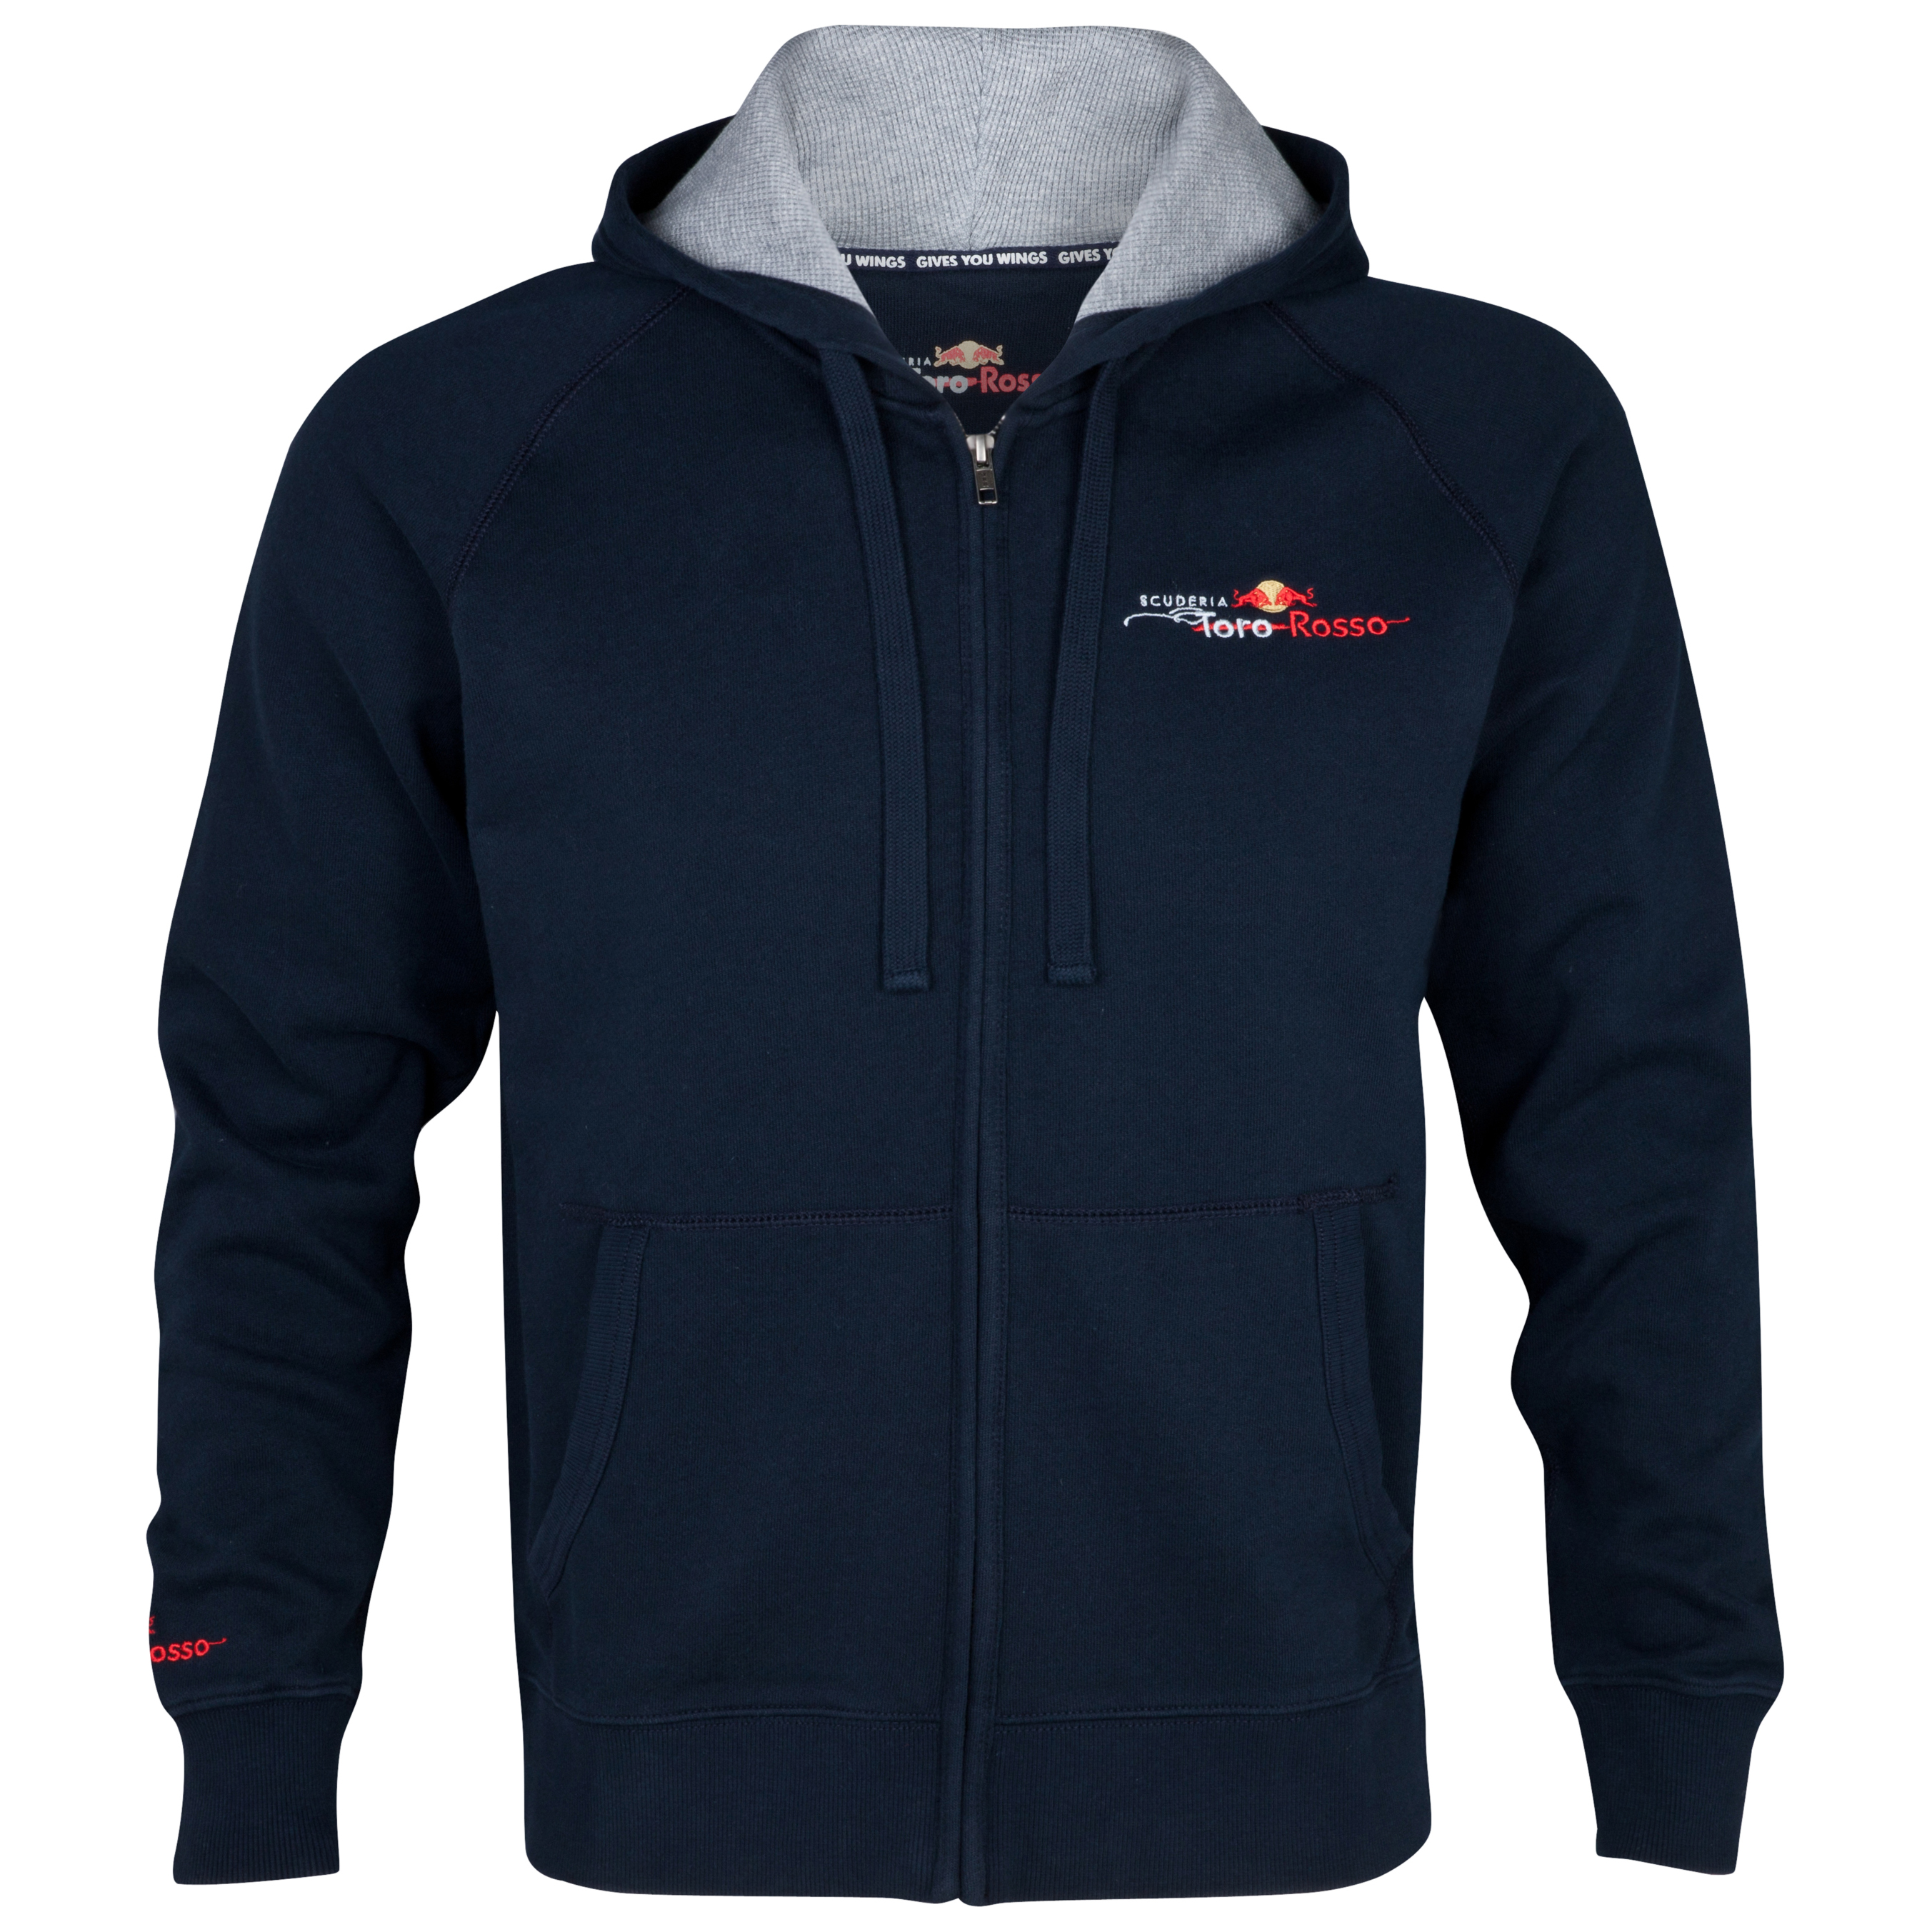 Scuderia Toro Rosso Hoodie